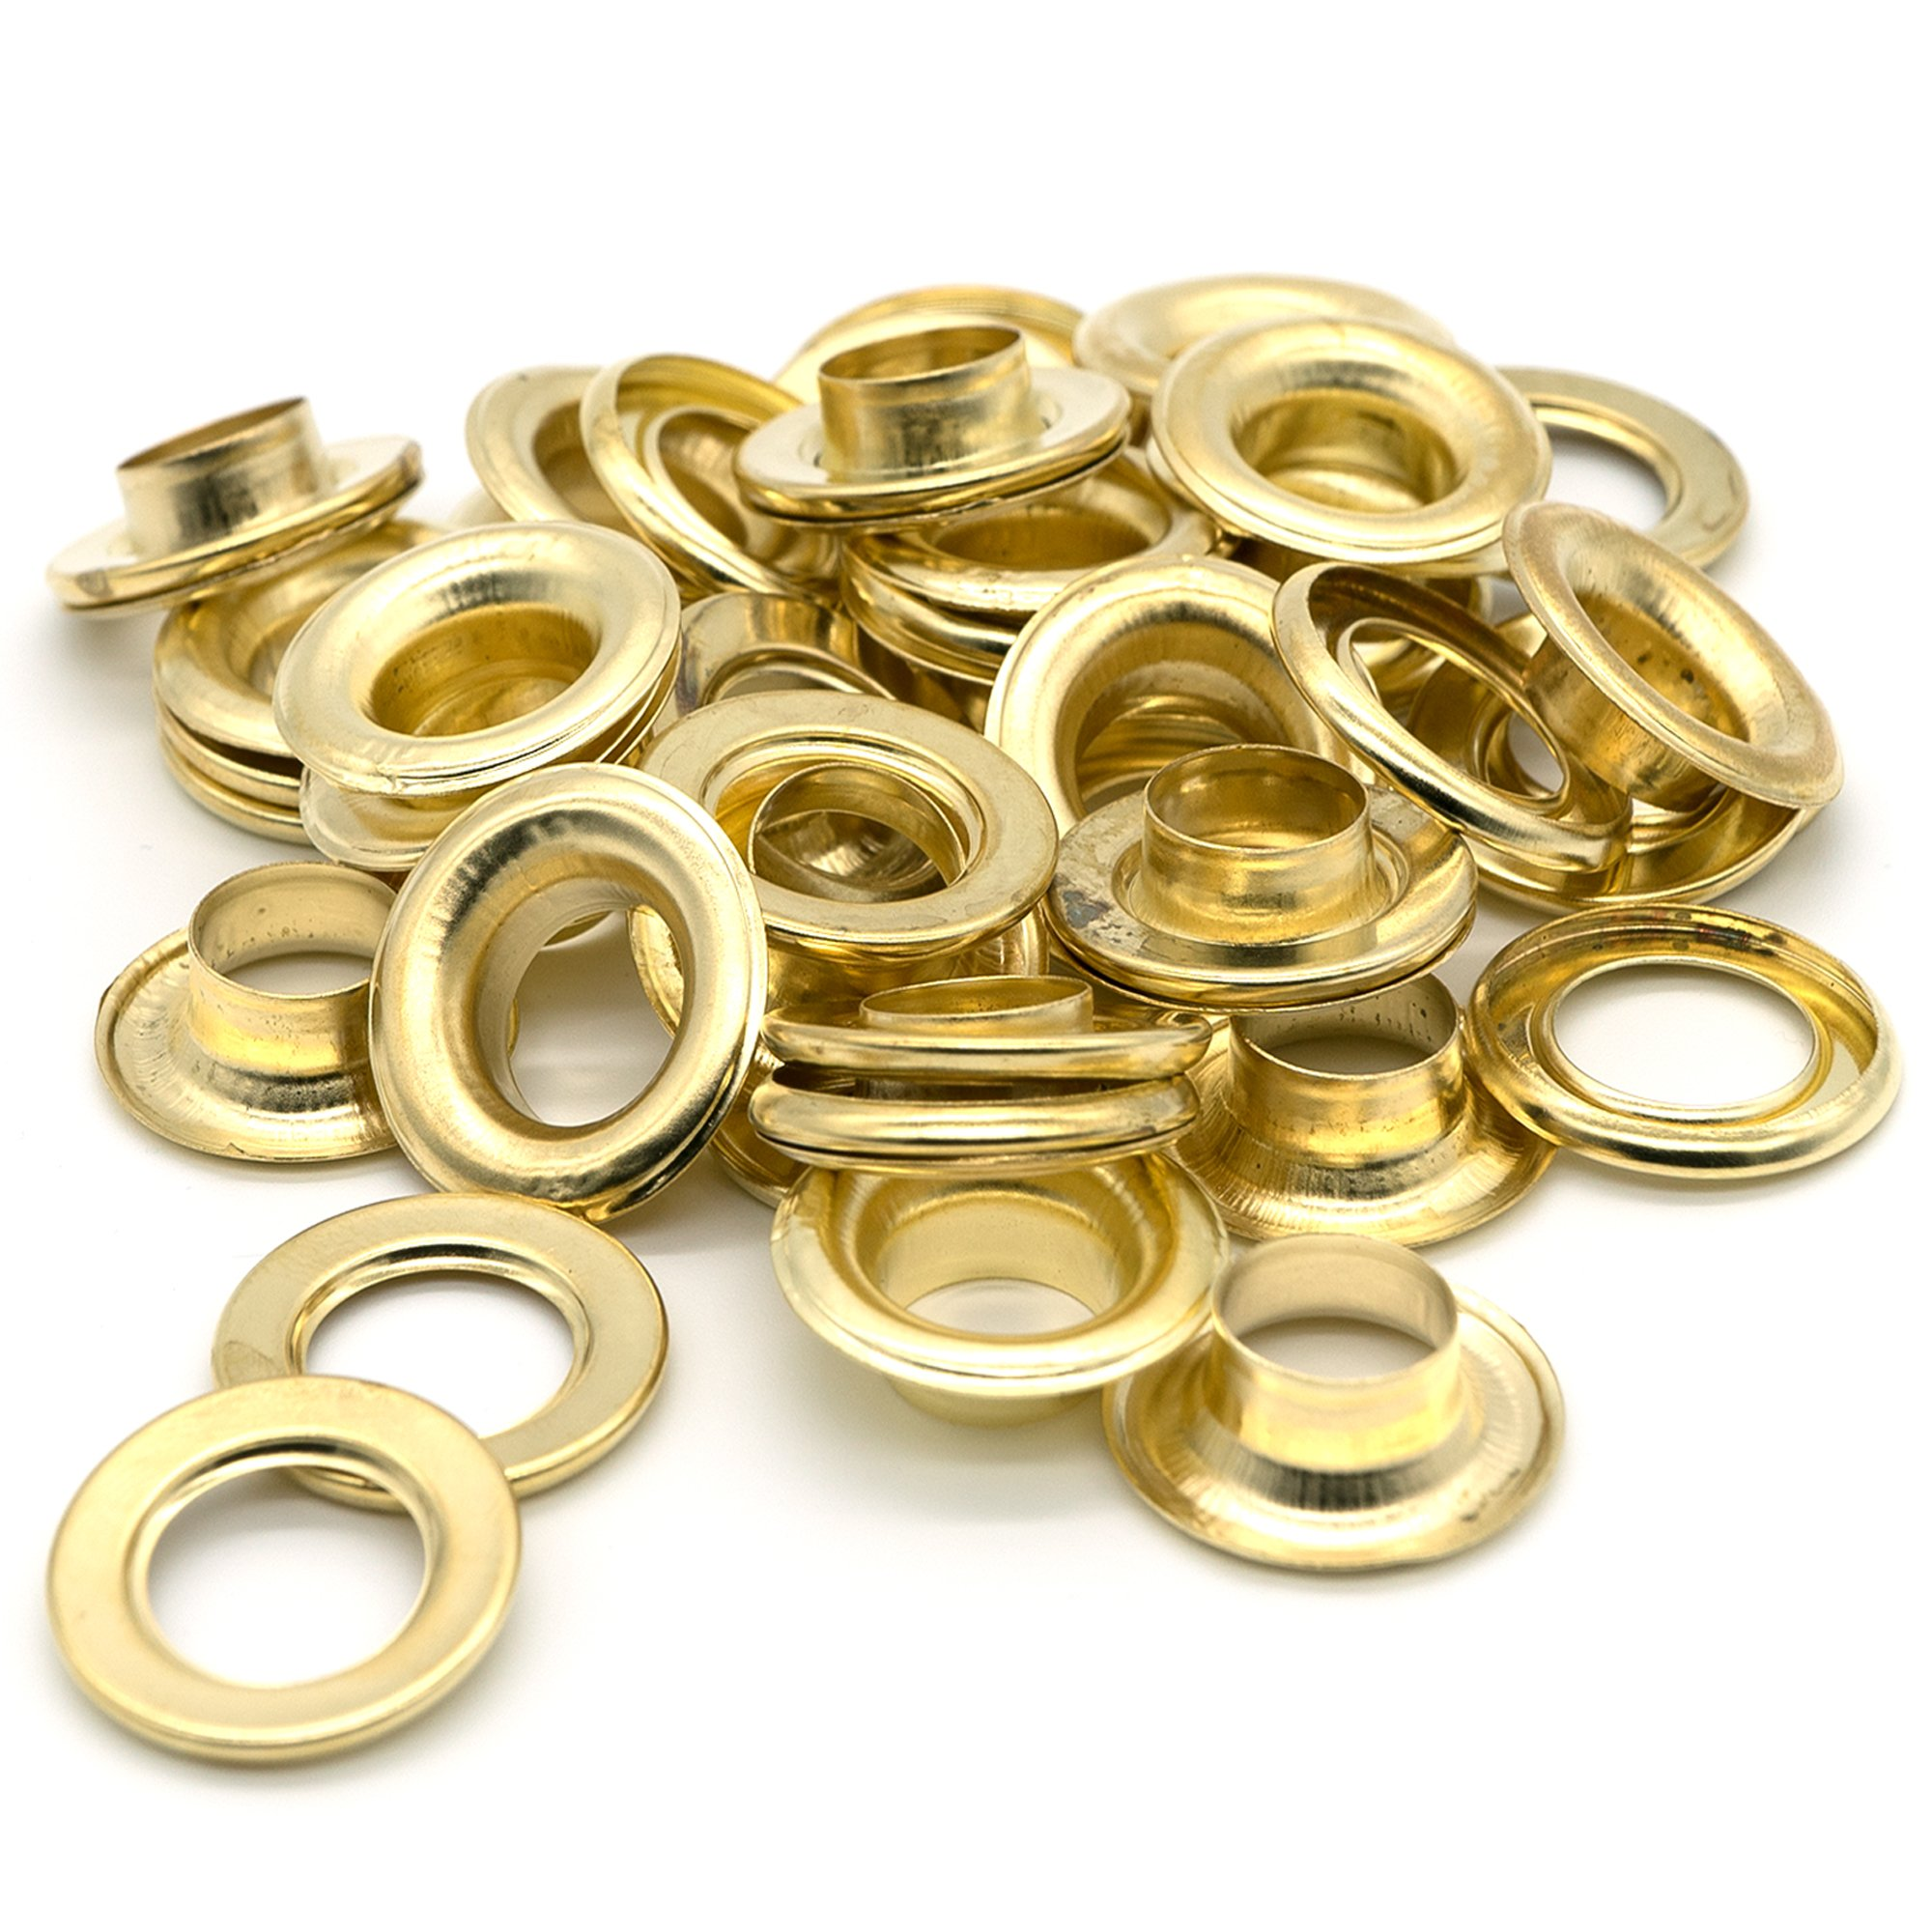 """Ram-Pro 1/2"""" Brass Grommets Eyelets with Washers Kit, Solid Metal Antique Style Eyelet Repair Replacement Pack, Sets of 25"""